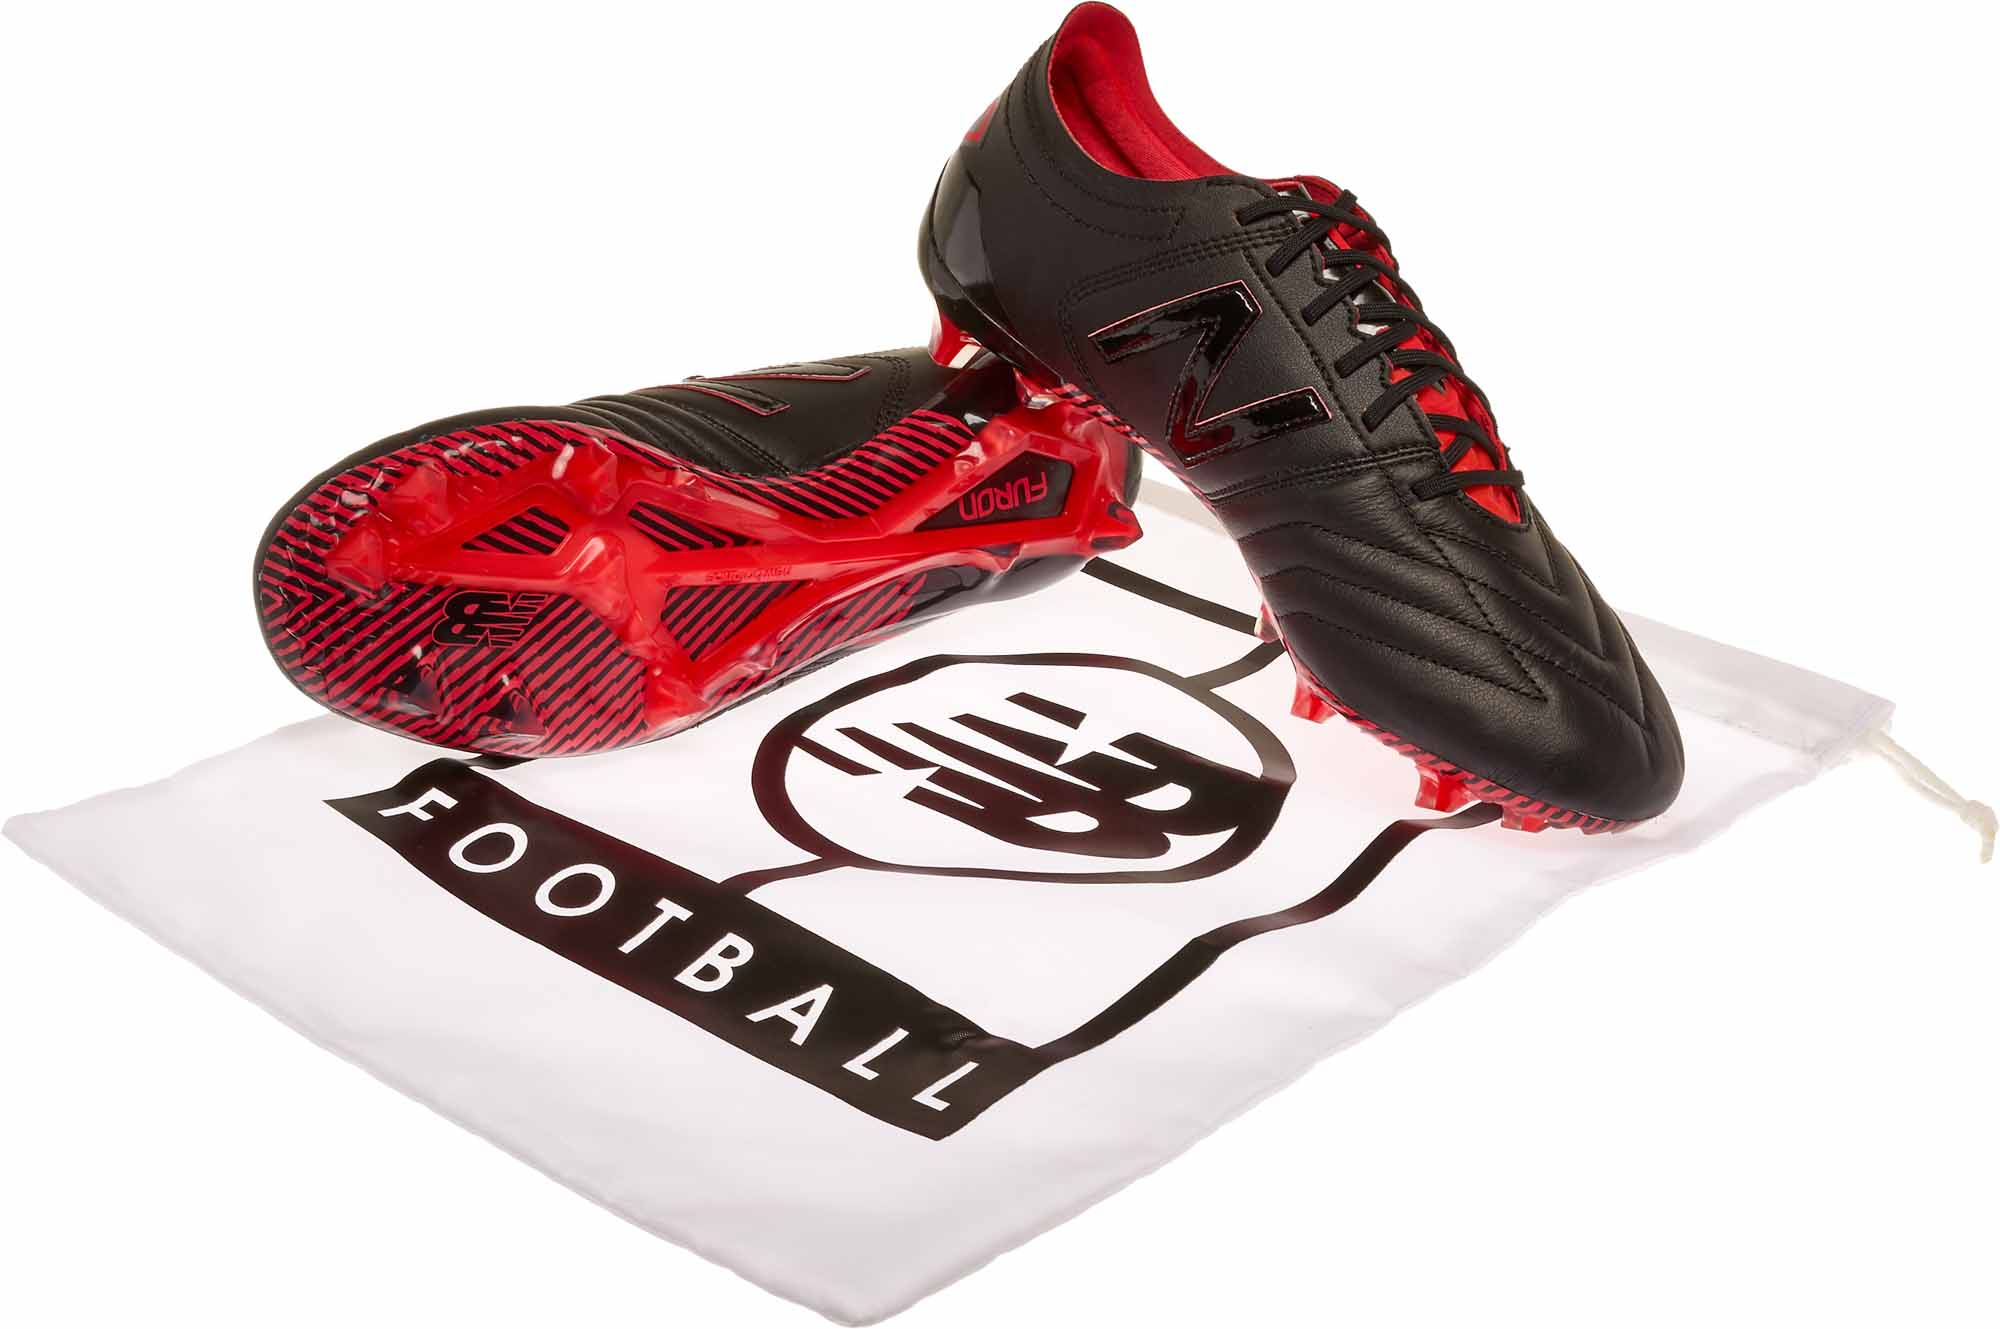 bb1911afe1e New Balance Furon 3.0 FG Soccer Cleats - K-Leather - Black   Energy ...